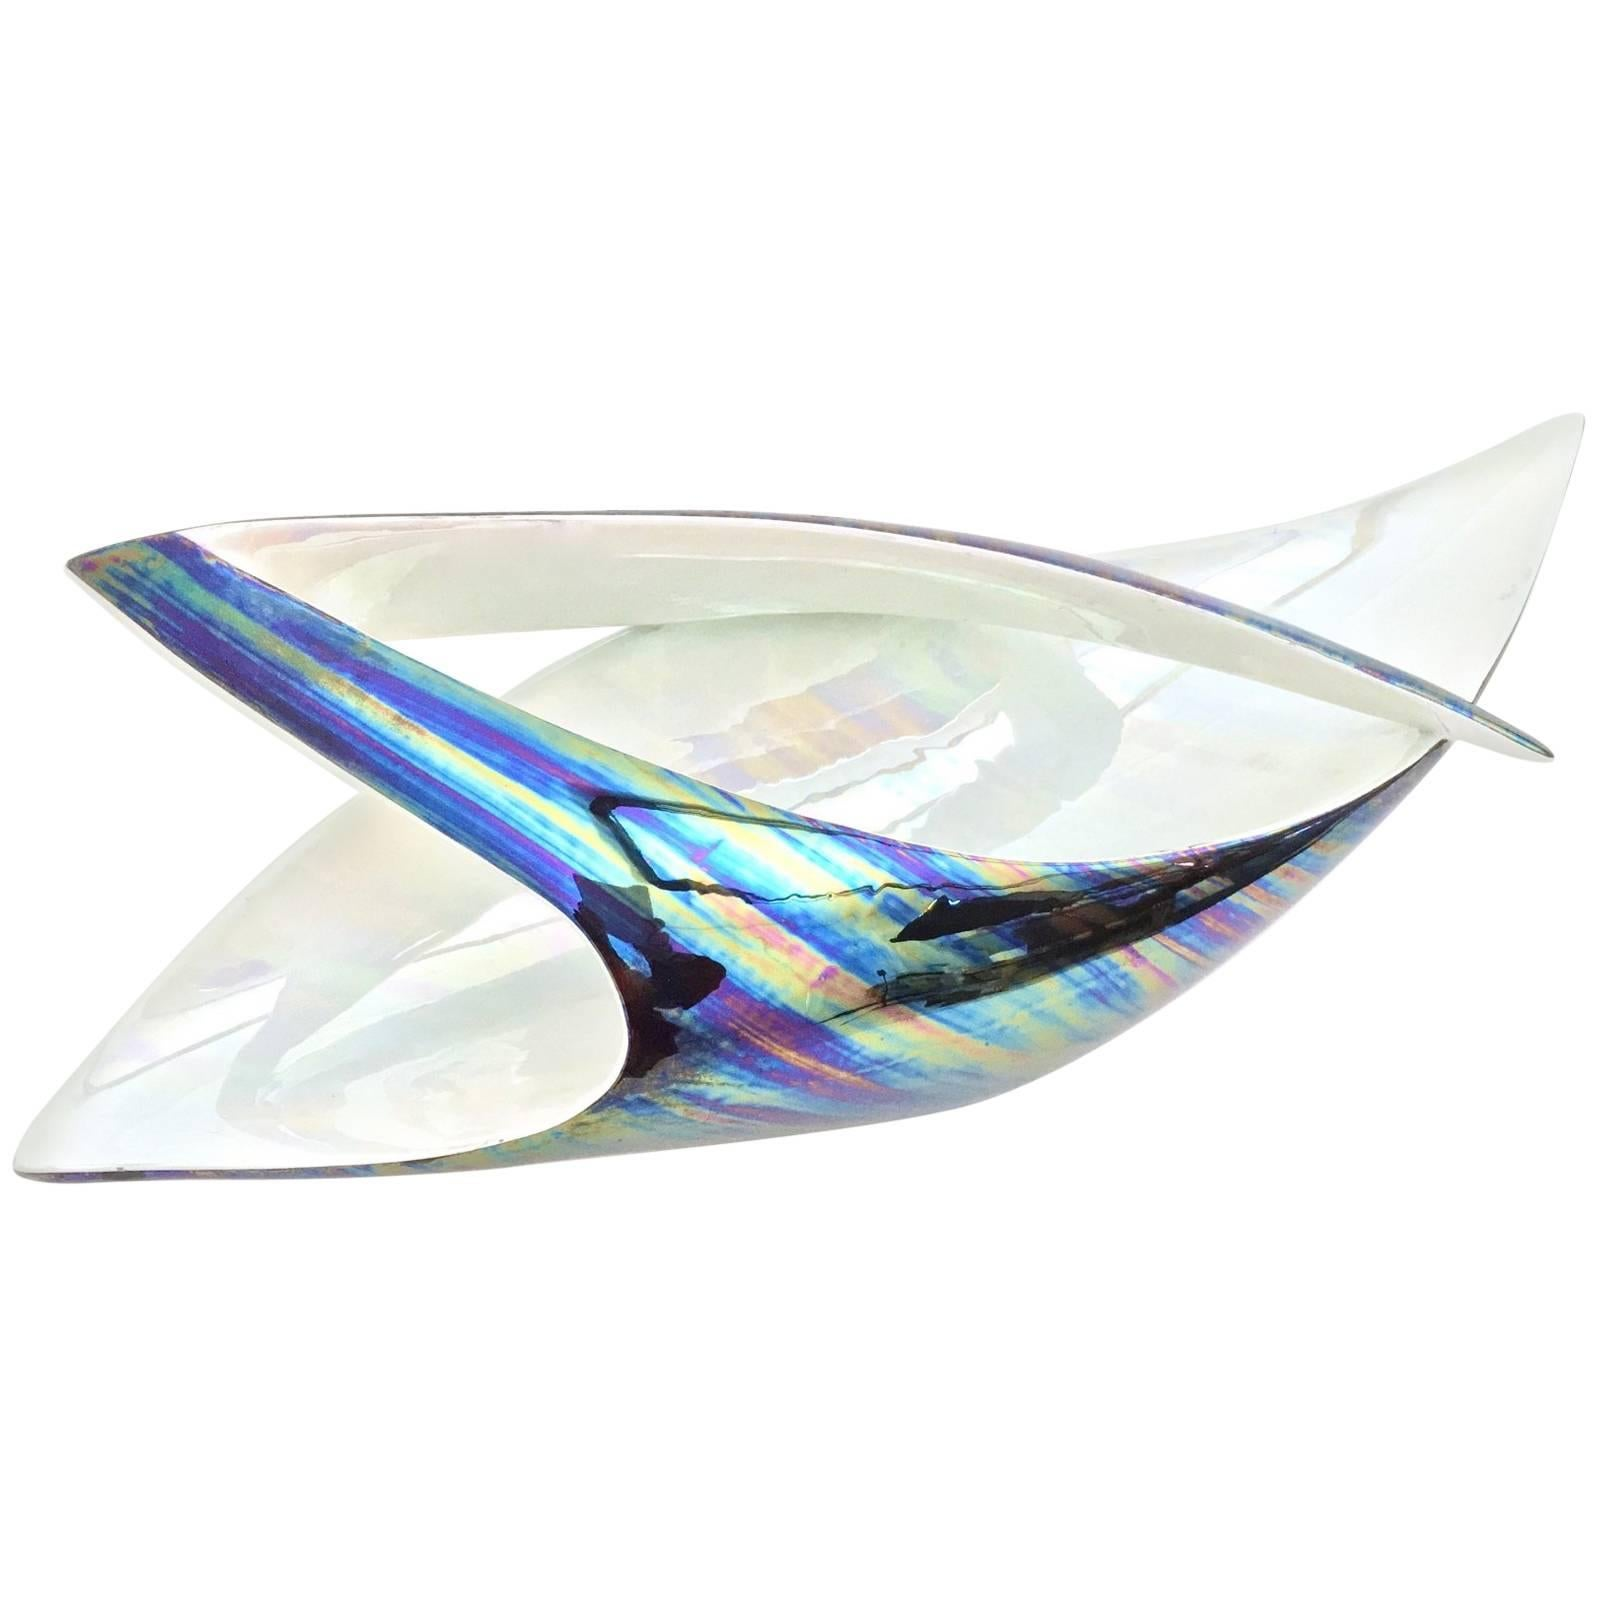 Iridescent Ceramic Bowl or Centerpiece by Lusso, Italy, 1950s